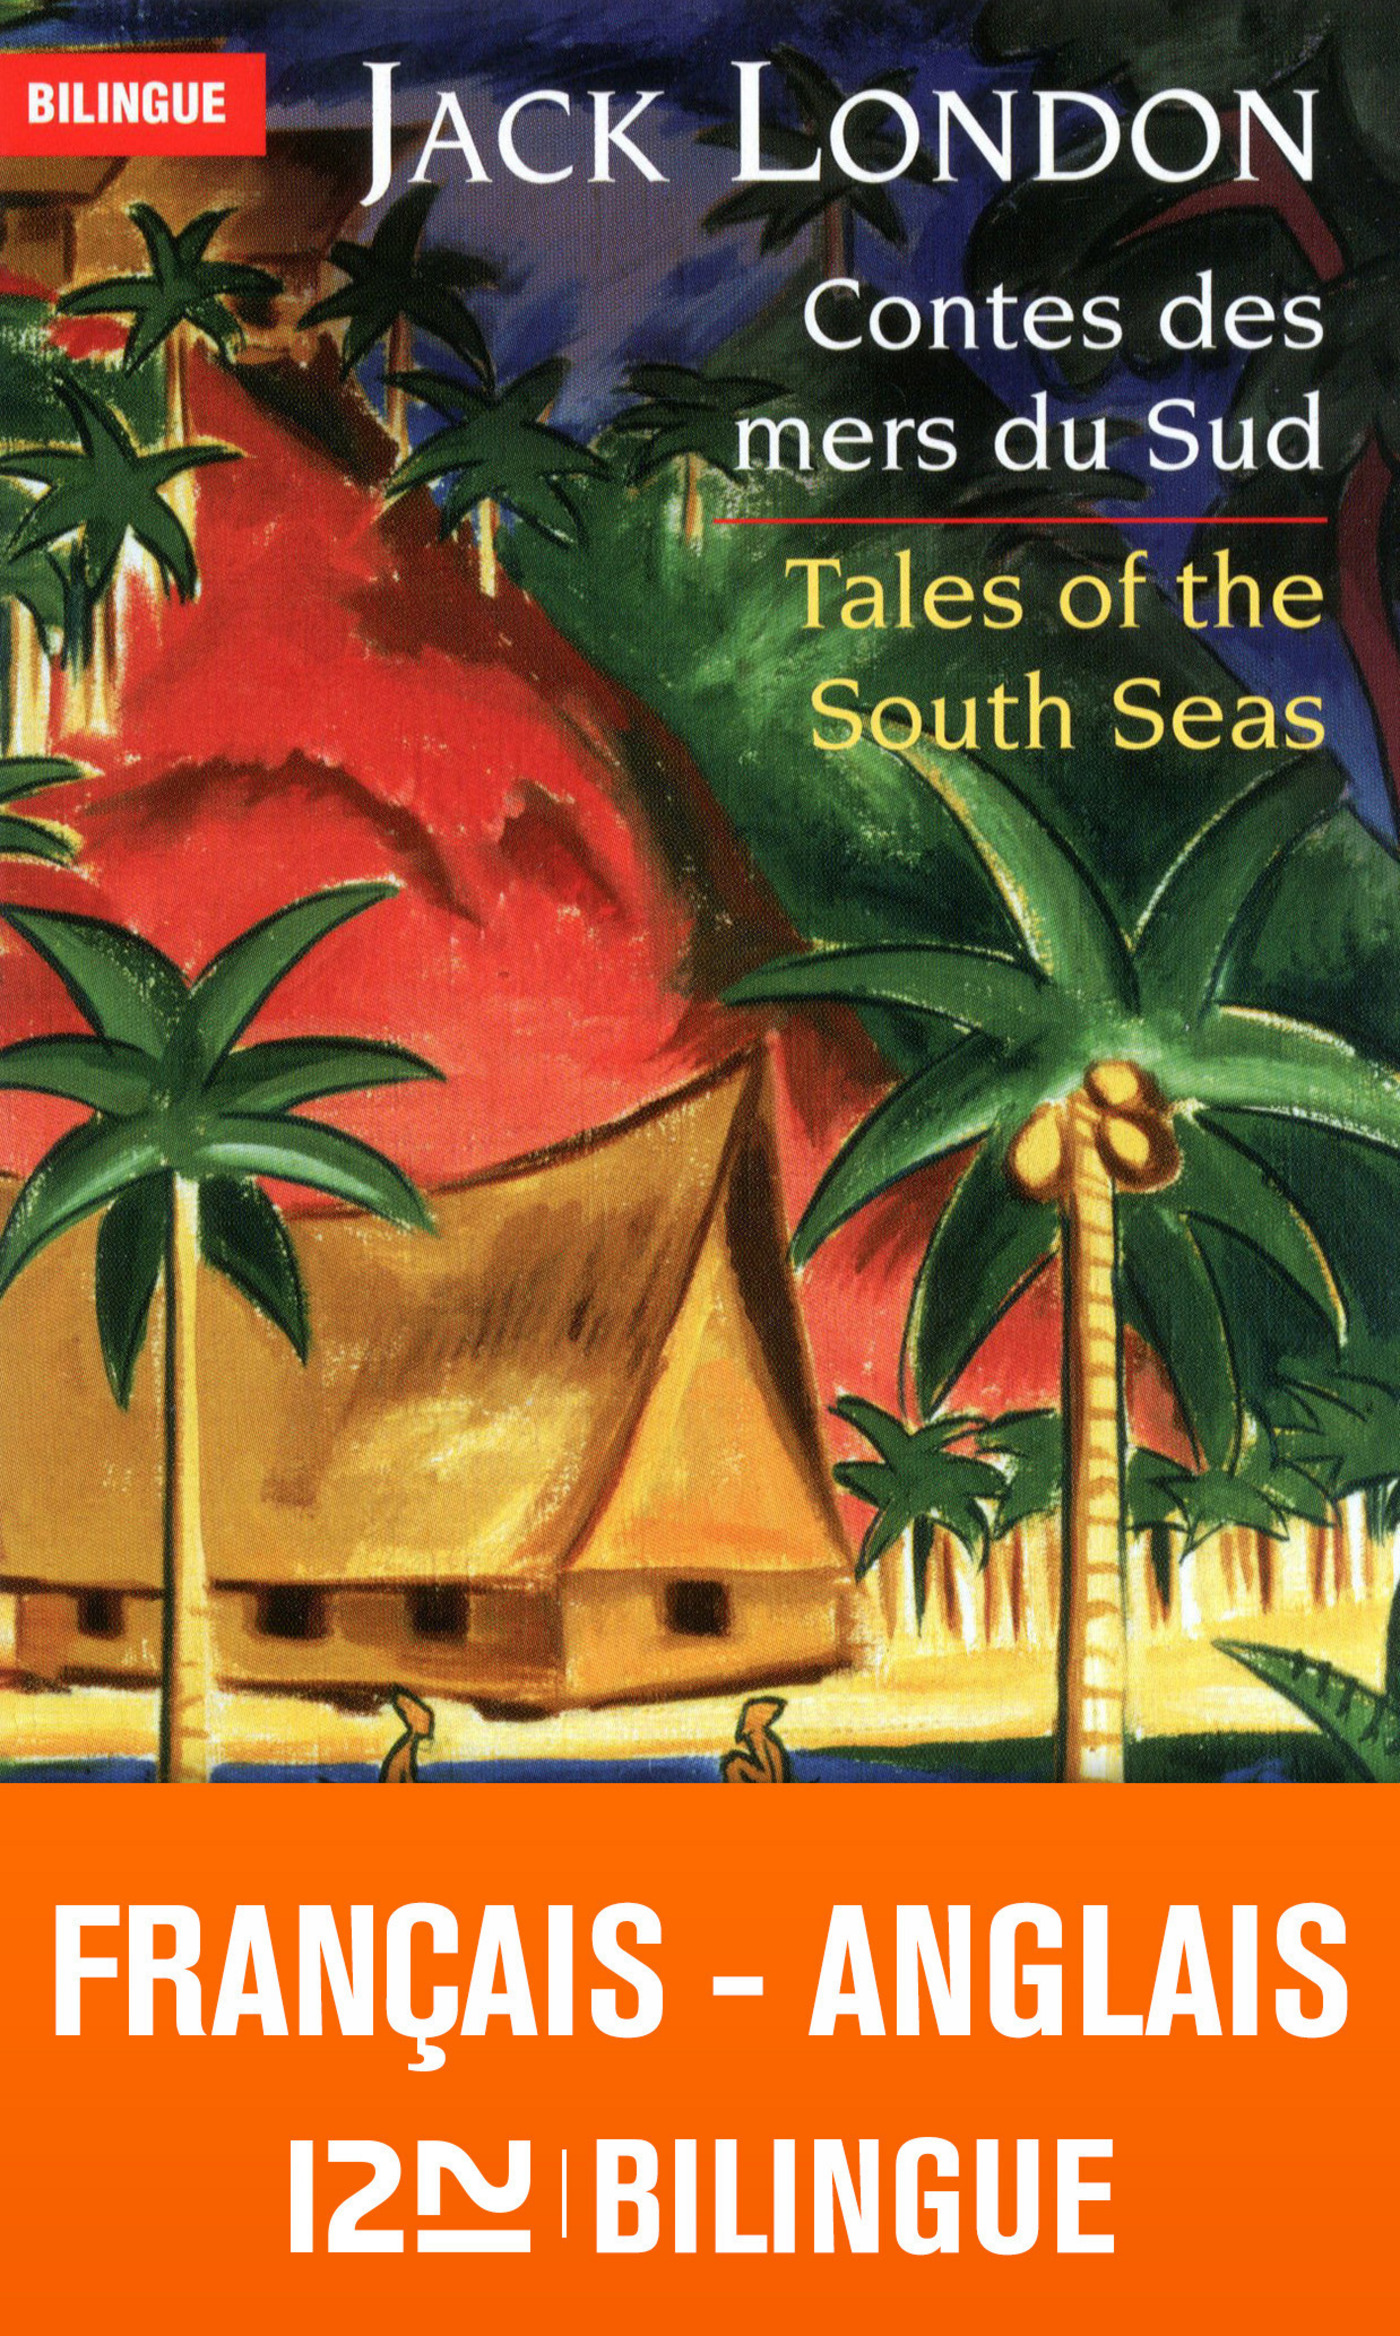 Bilingue français-anglais : Contes des mers du sud – Tales of the South Seas